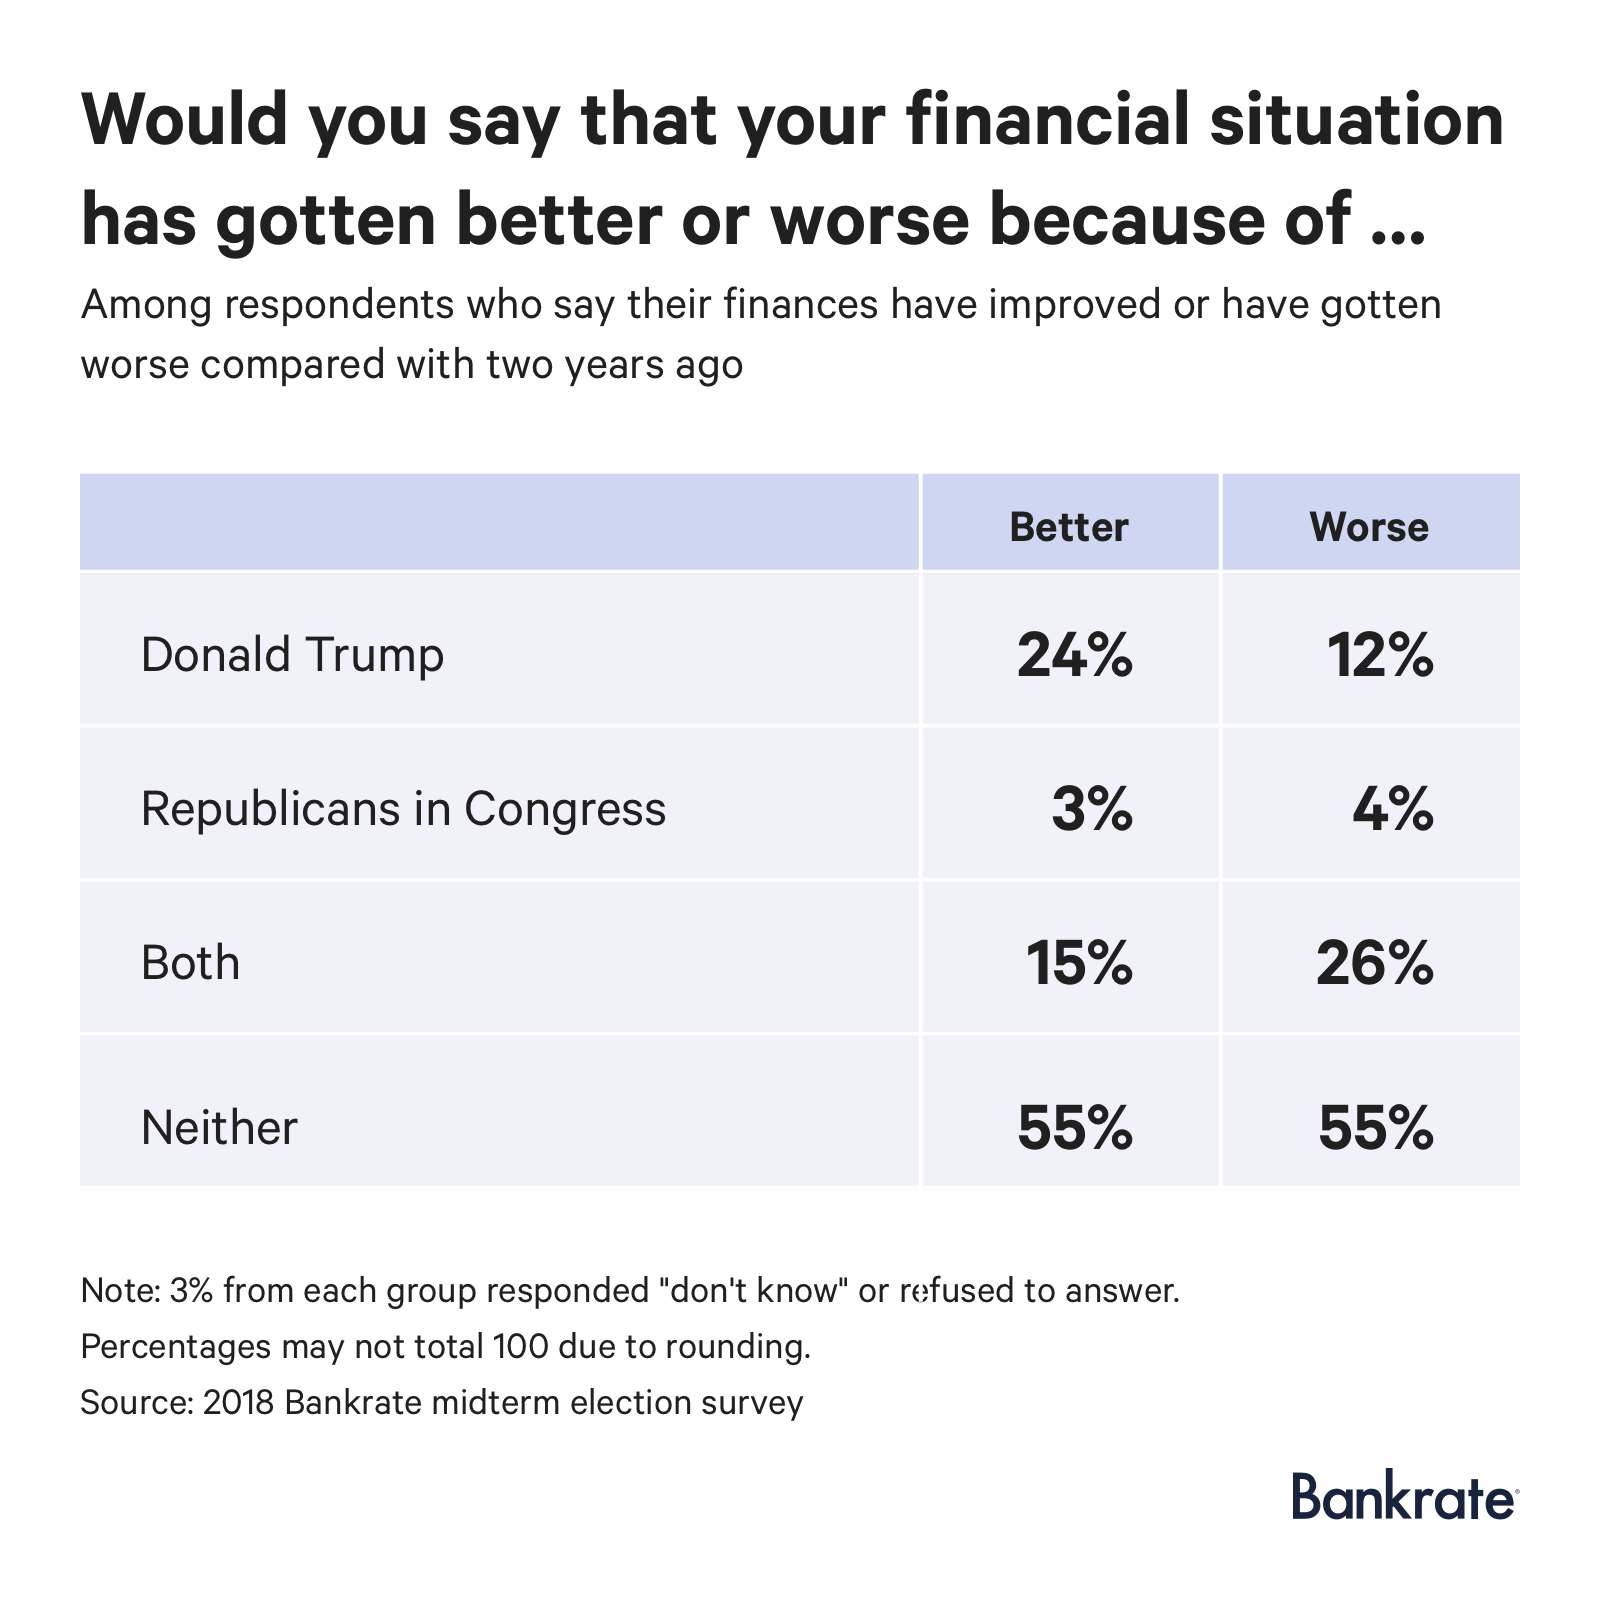 Among respondents whoh say their finances have improved or gotten worse compare with two years ago